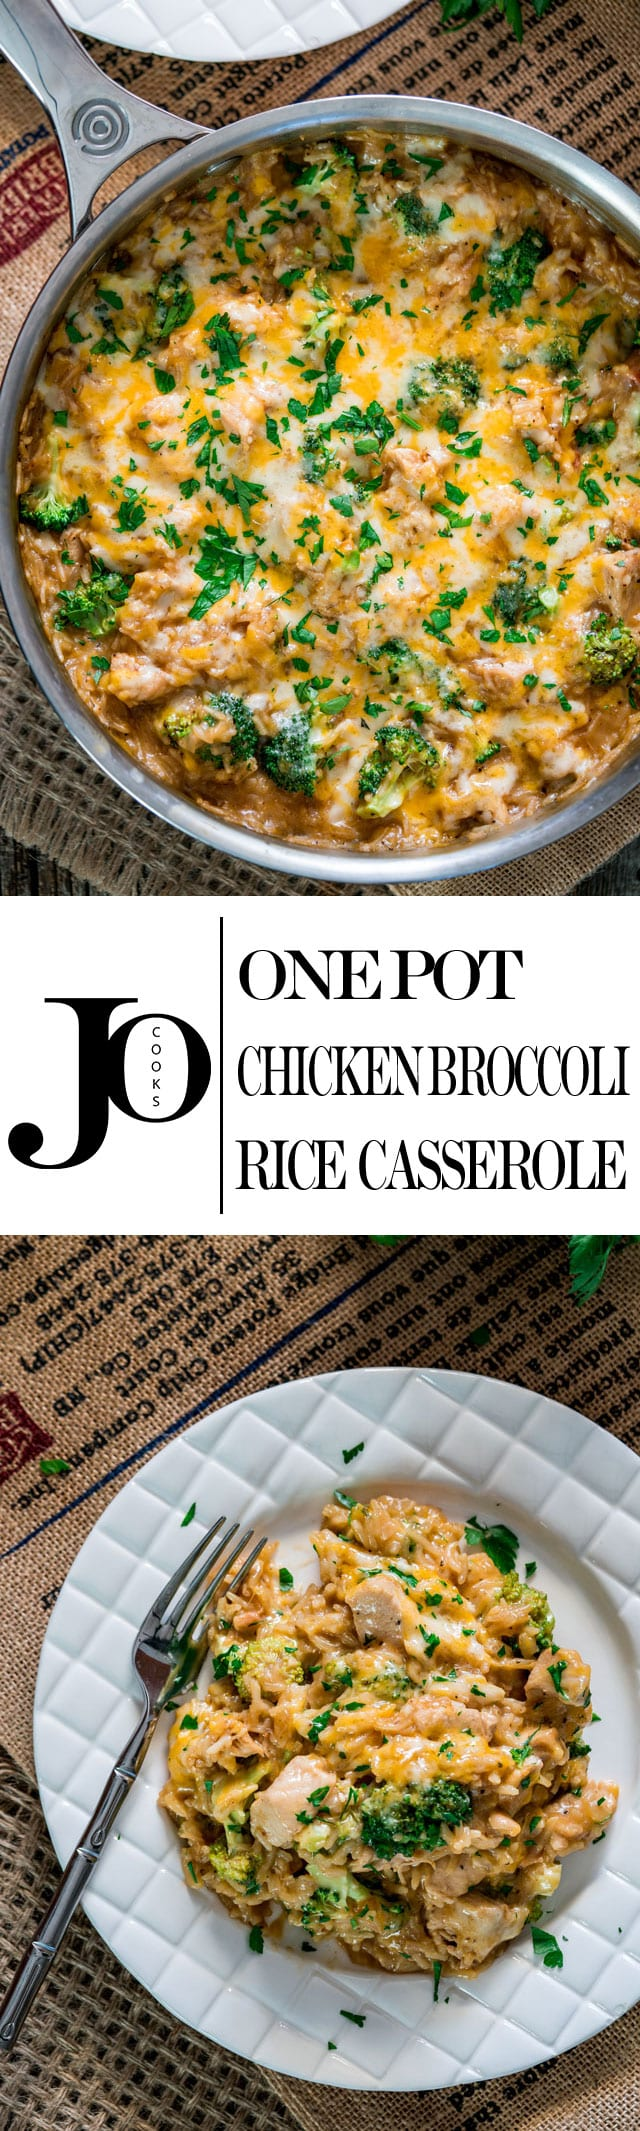 This Cheesy Chicken Broccoli Rice Casserole is made all in ONE POT and ready in only 30 minutes. It's cheesy, it's comforting, loaded with broccoli and super simple to make! #casserole #ricecasserole